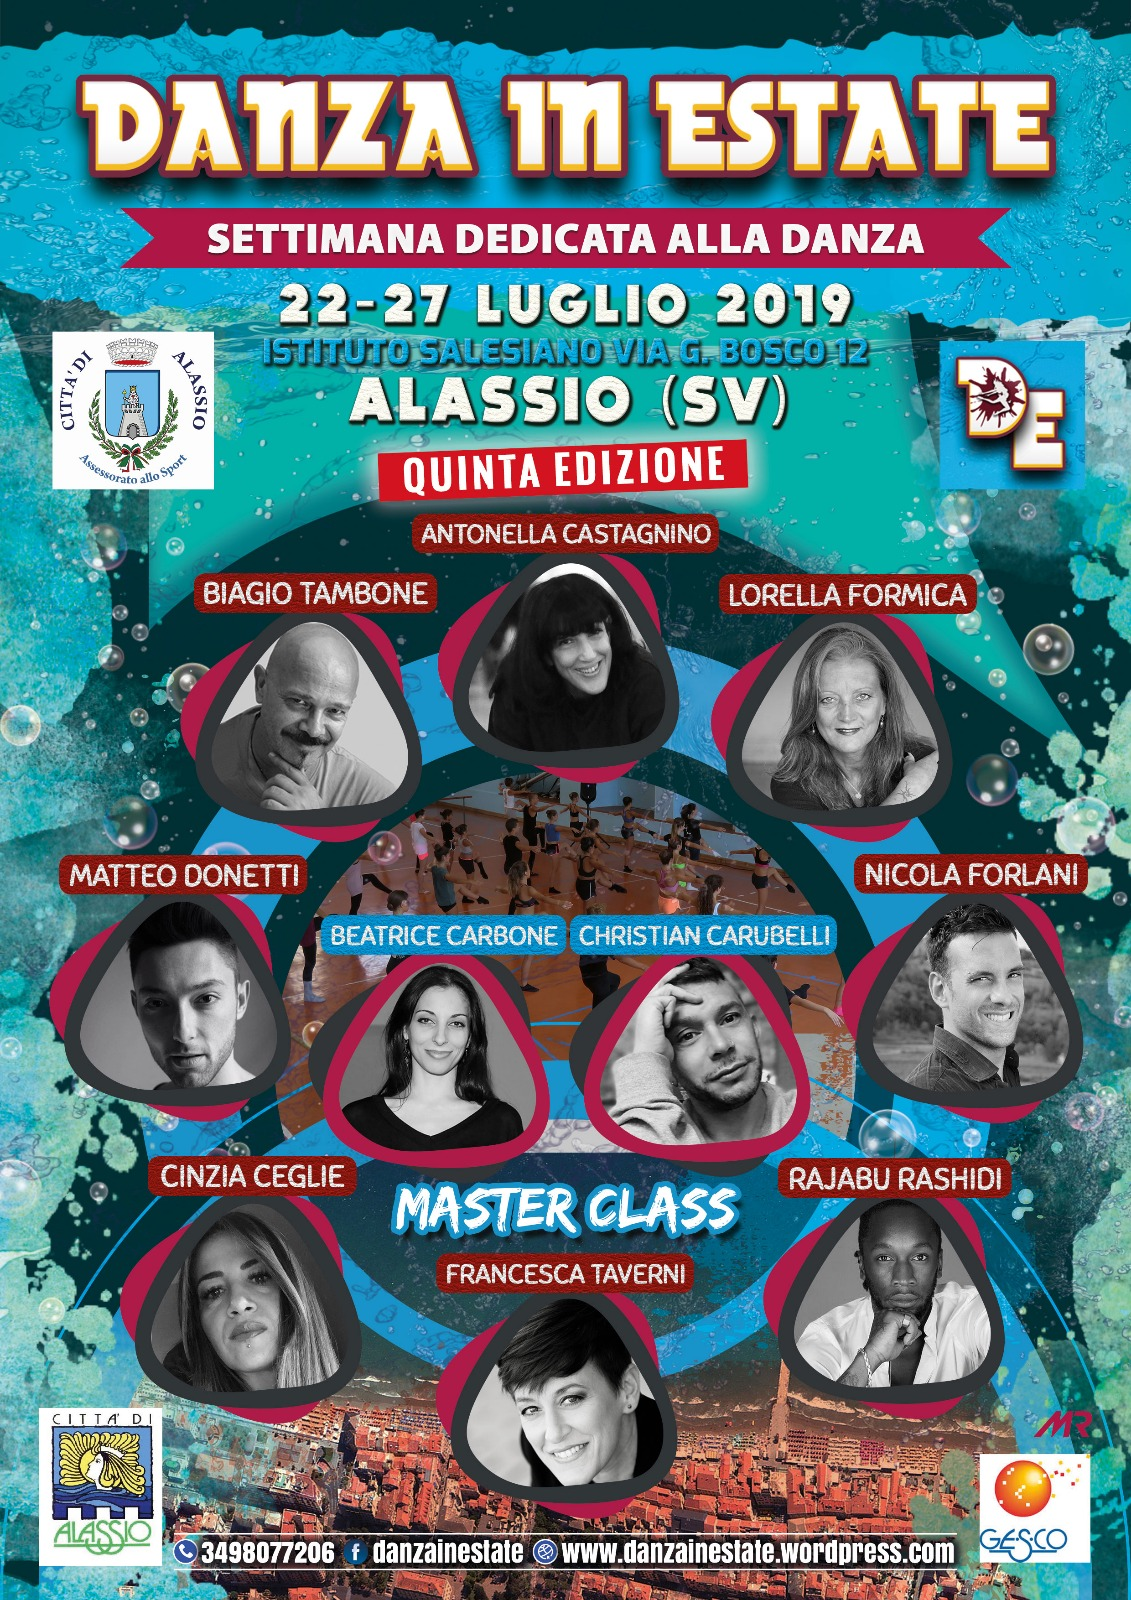 DANZA IN ESTATE 2019 (BANDO STAGE)